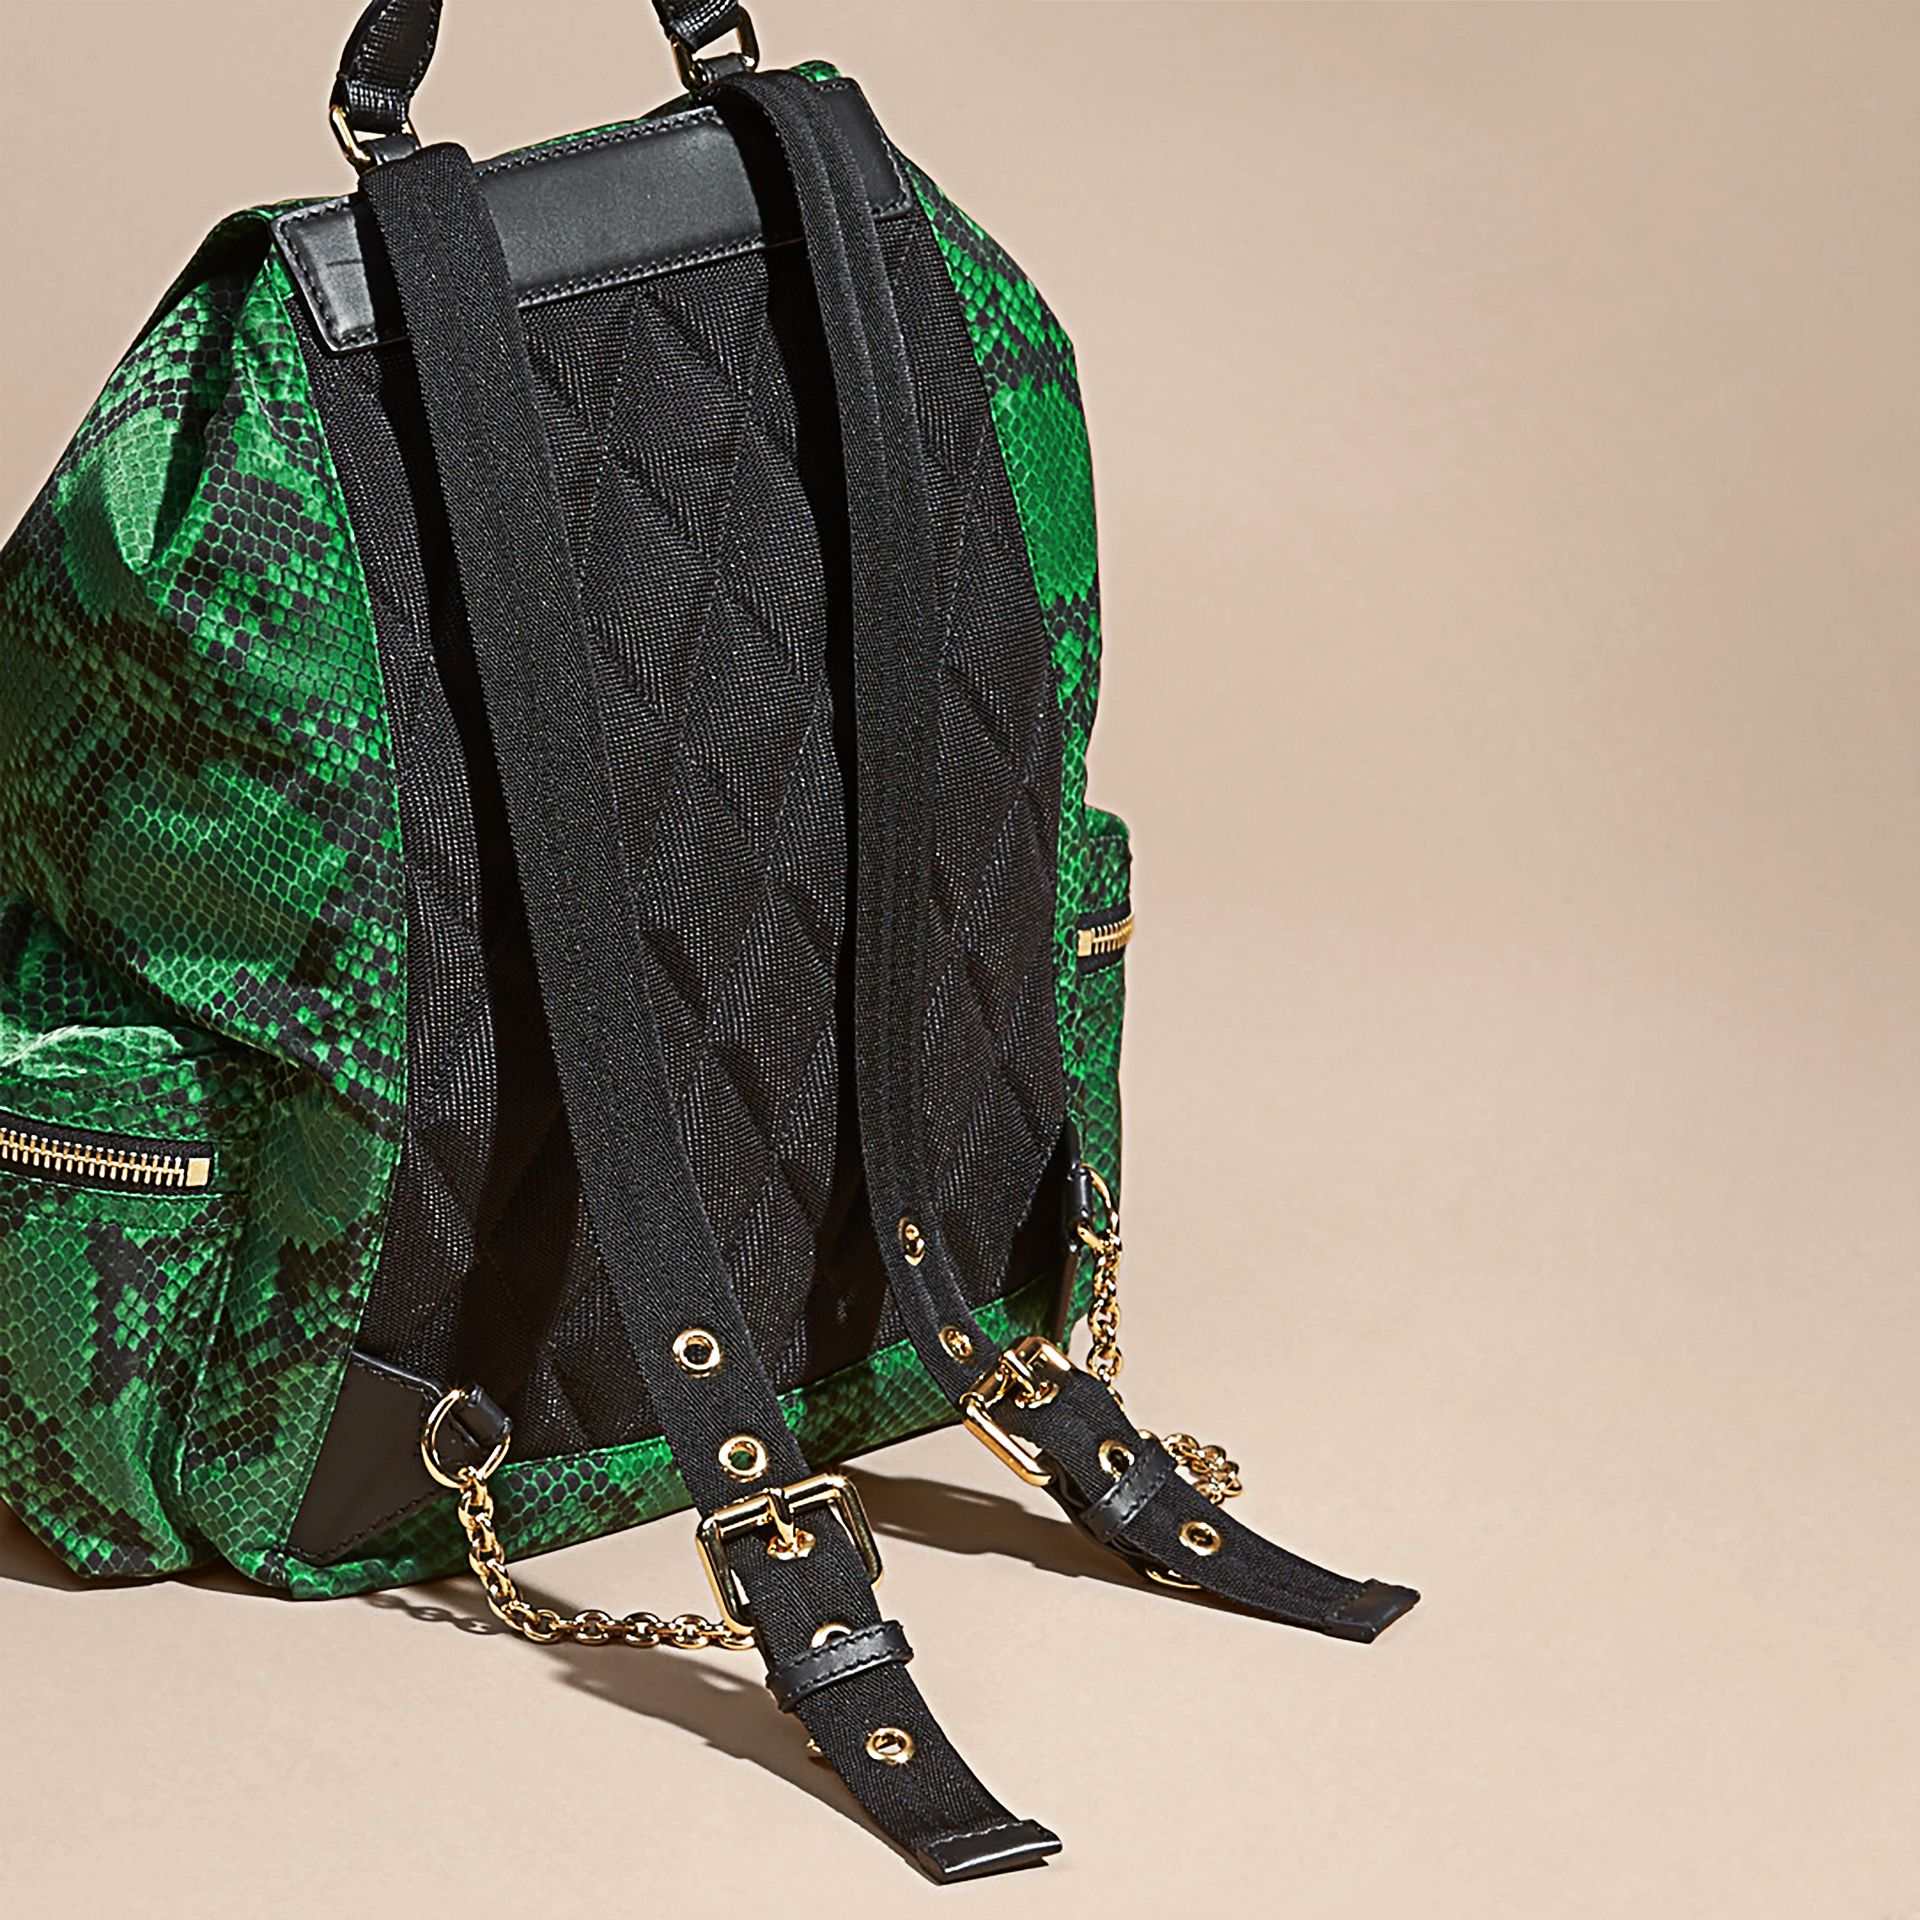 Grand sac The Rucksack en nylon à imprimé python et cuir Vert - photo de la galerie 4